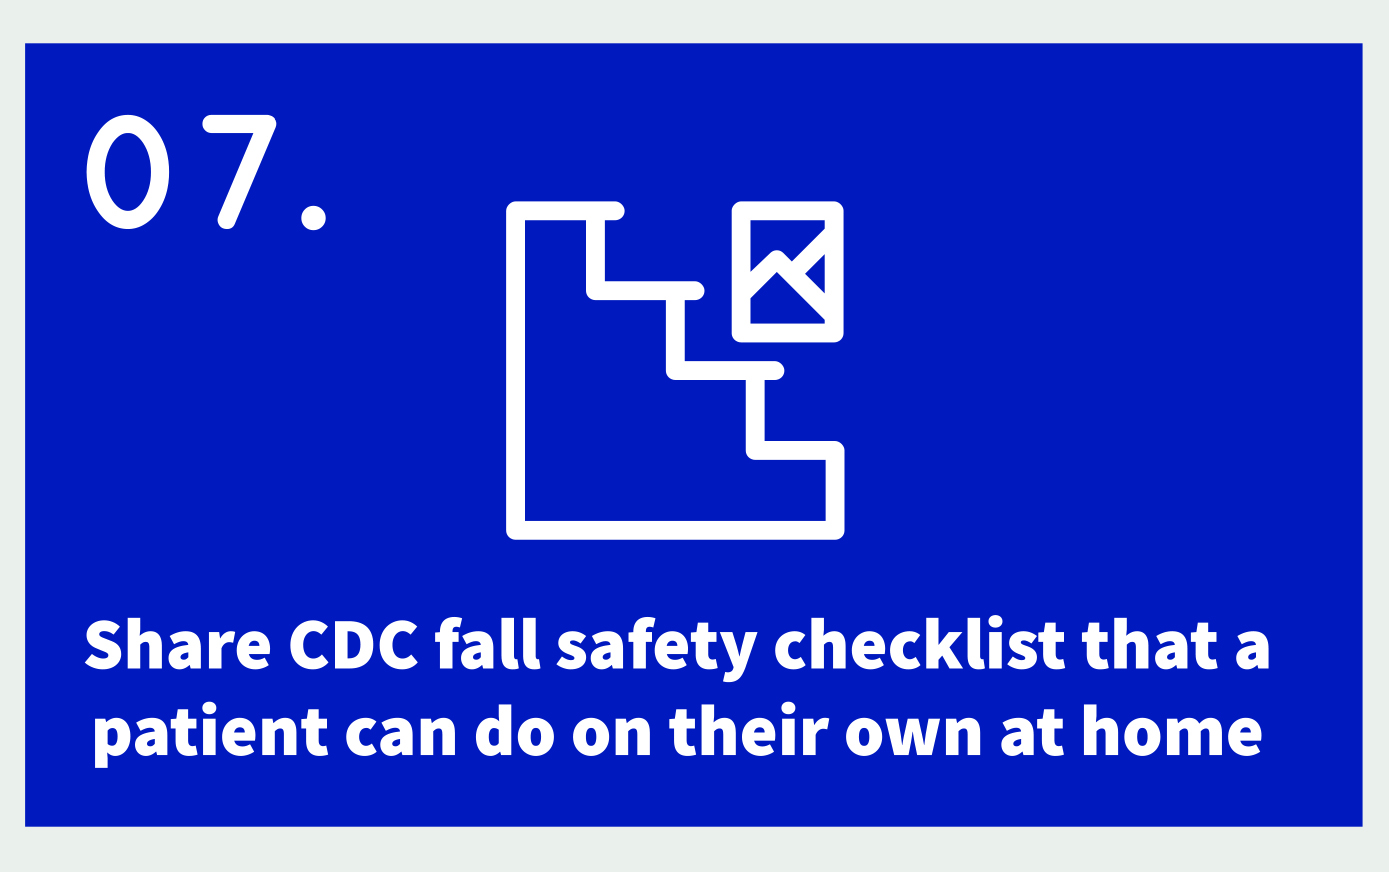 07. Icon: home interior (staircase) Text: Share CDC fall safety checklist that a patient can on their own at home